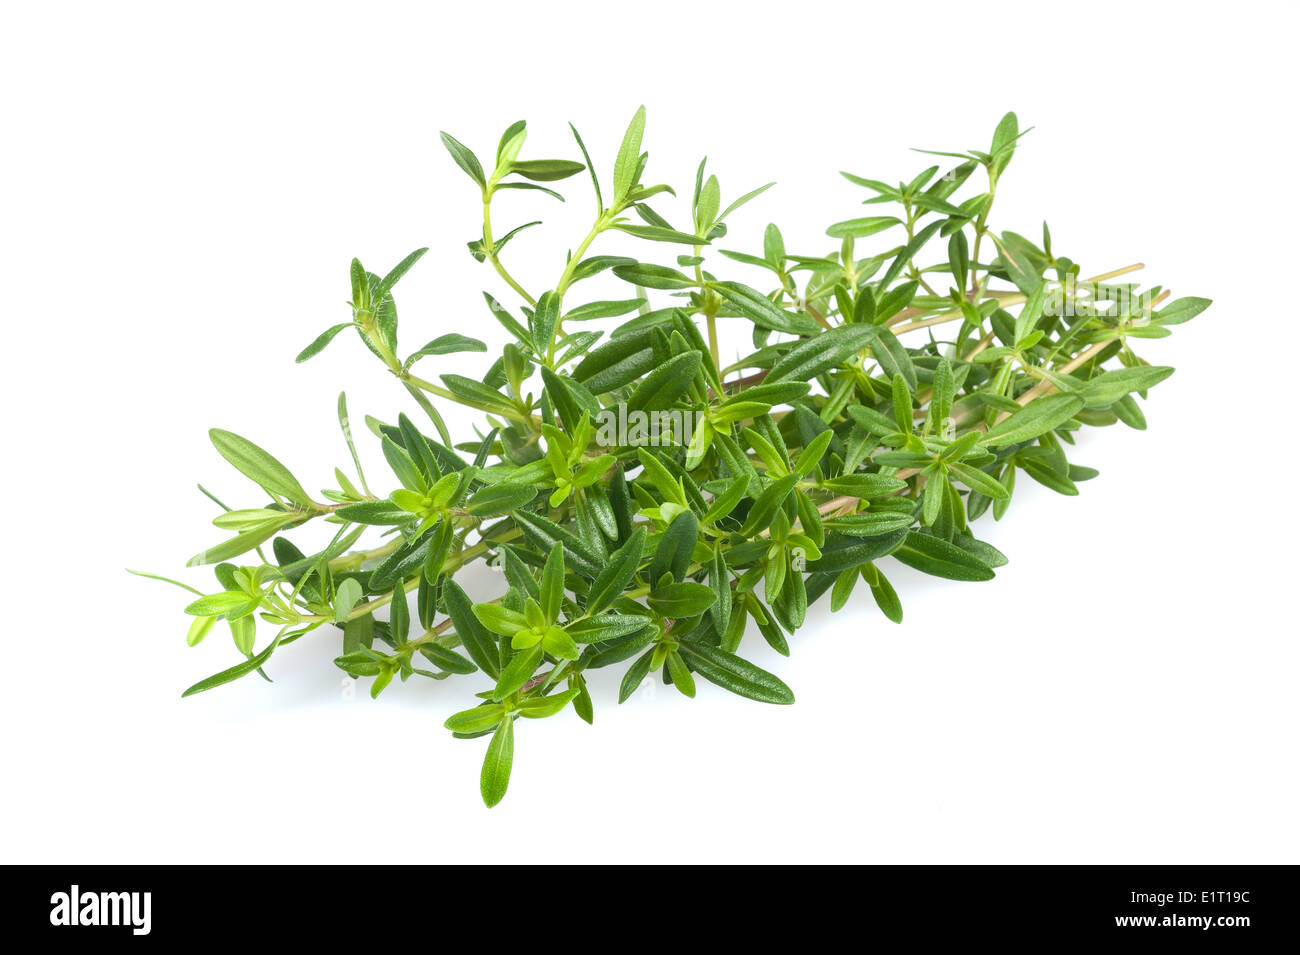 Savory bunch isolated on white background - Stock Image